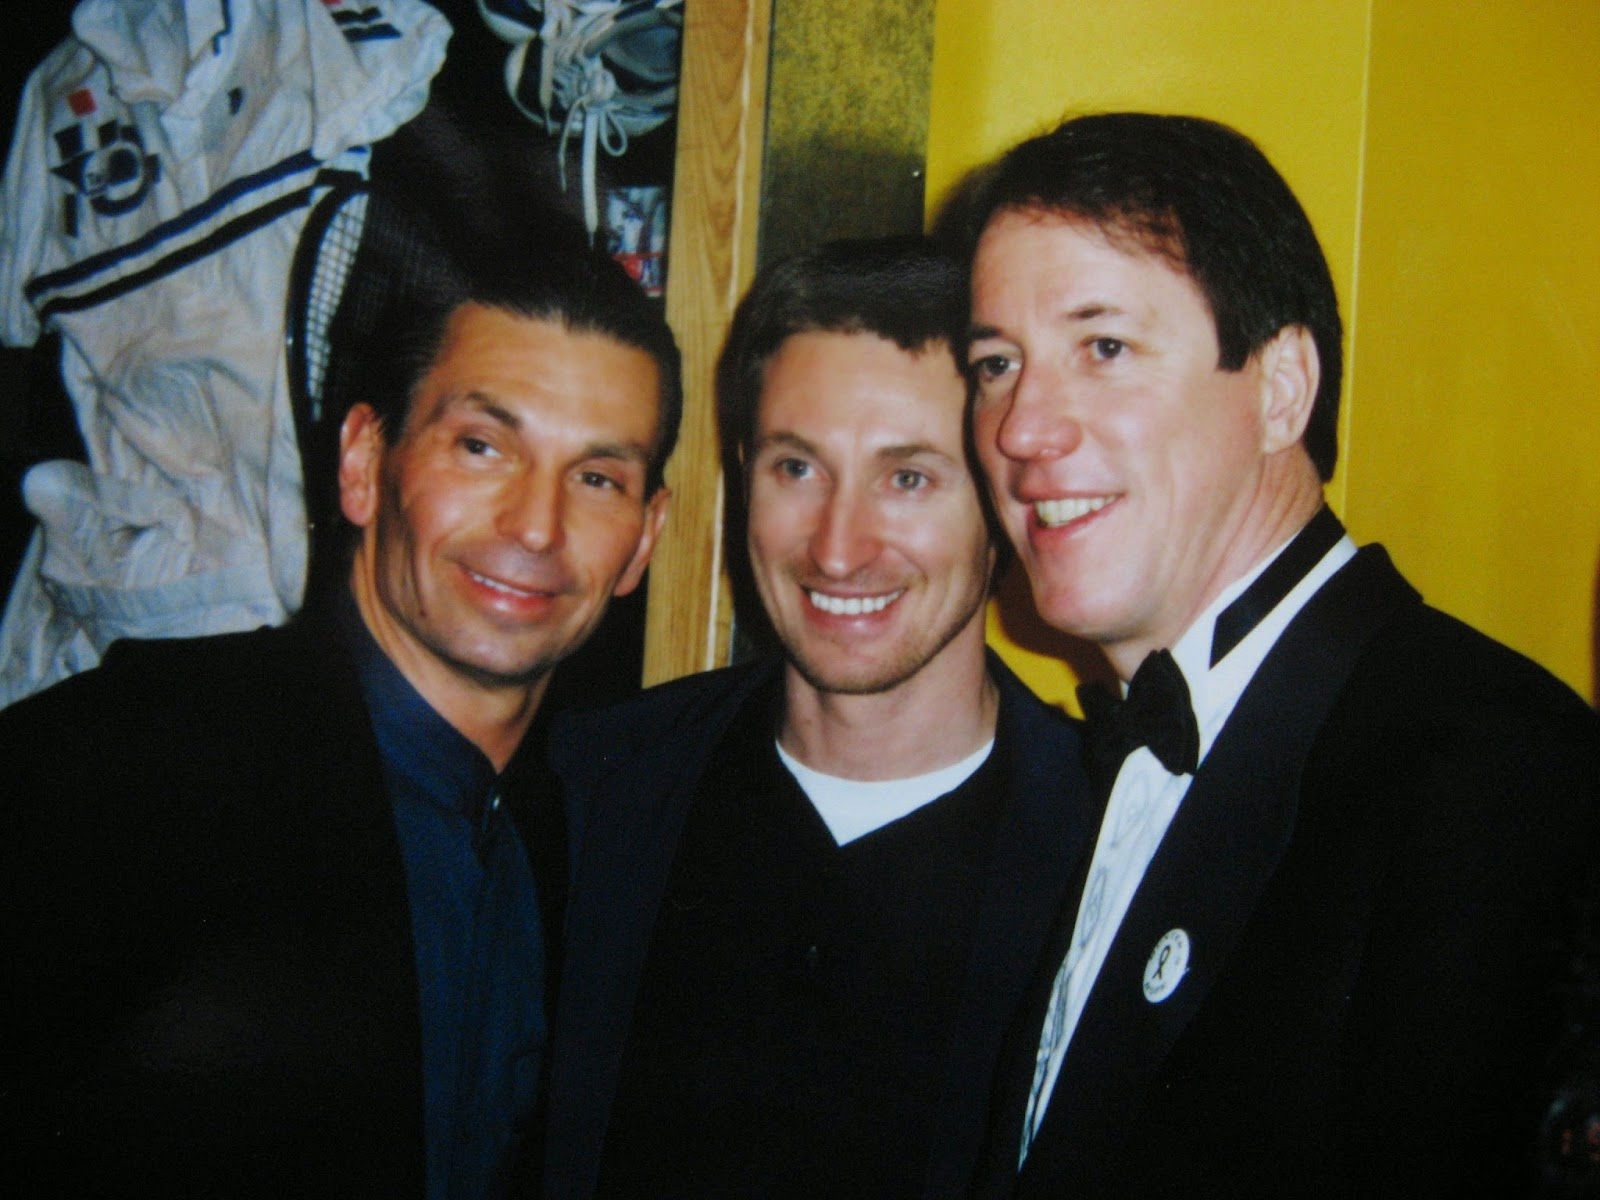 Wayne Gretzky in the center, Jim Kelly on the right and I can't remember the guy on the left